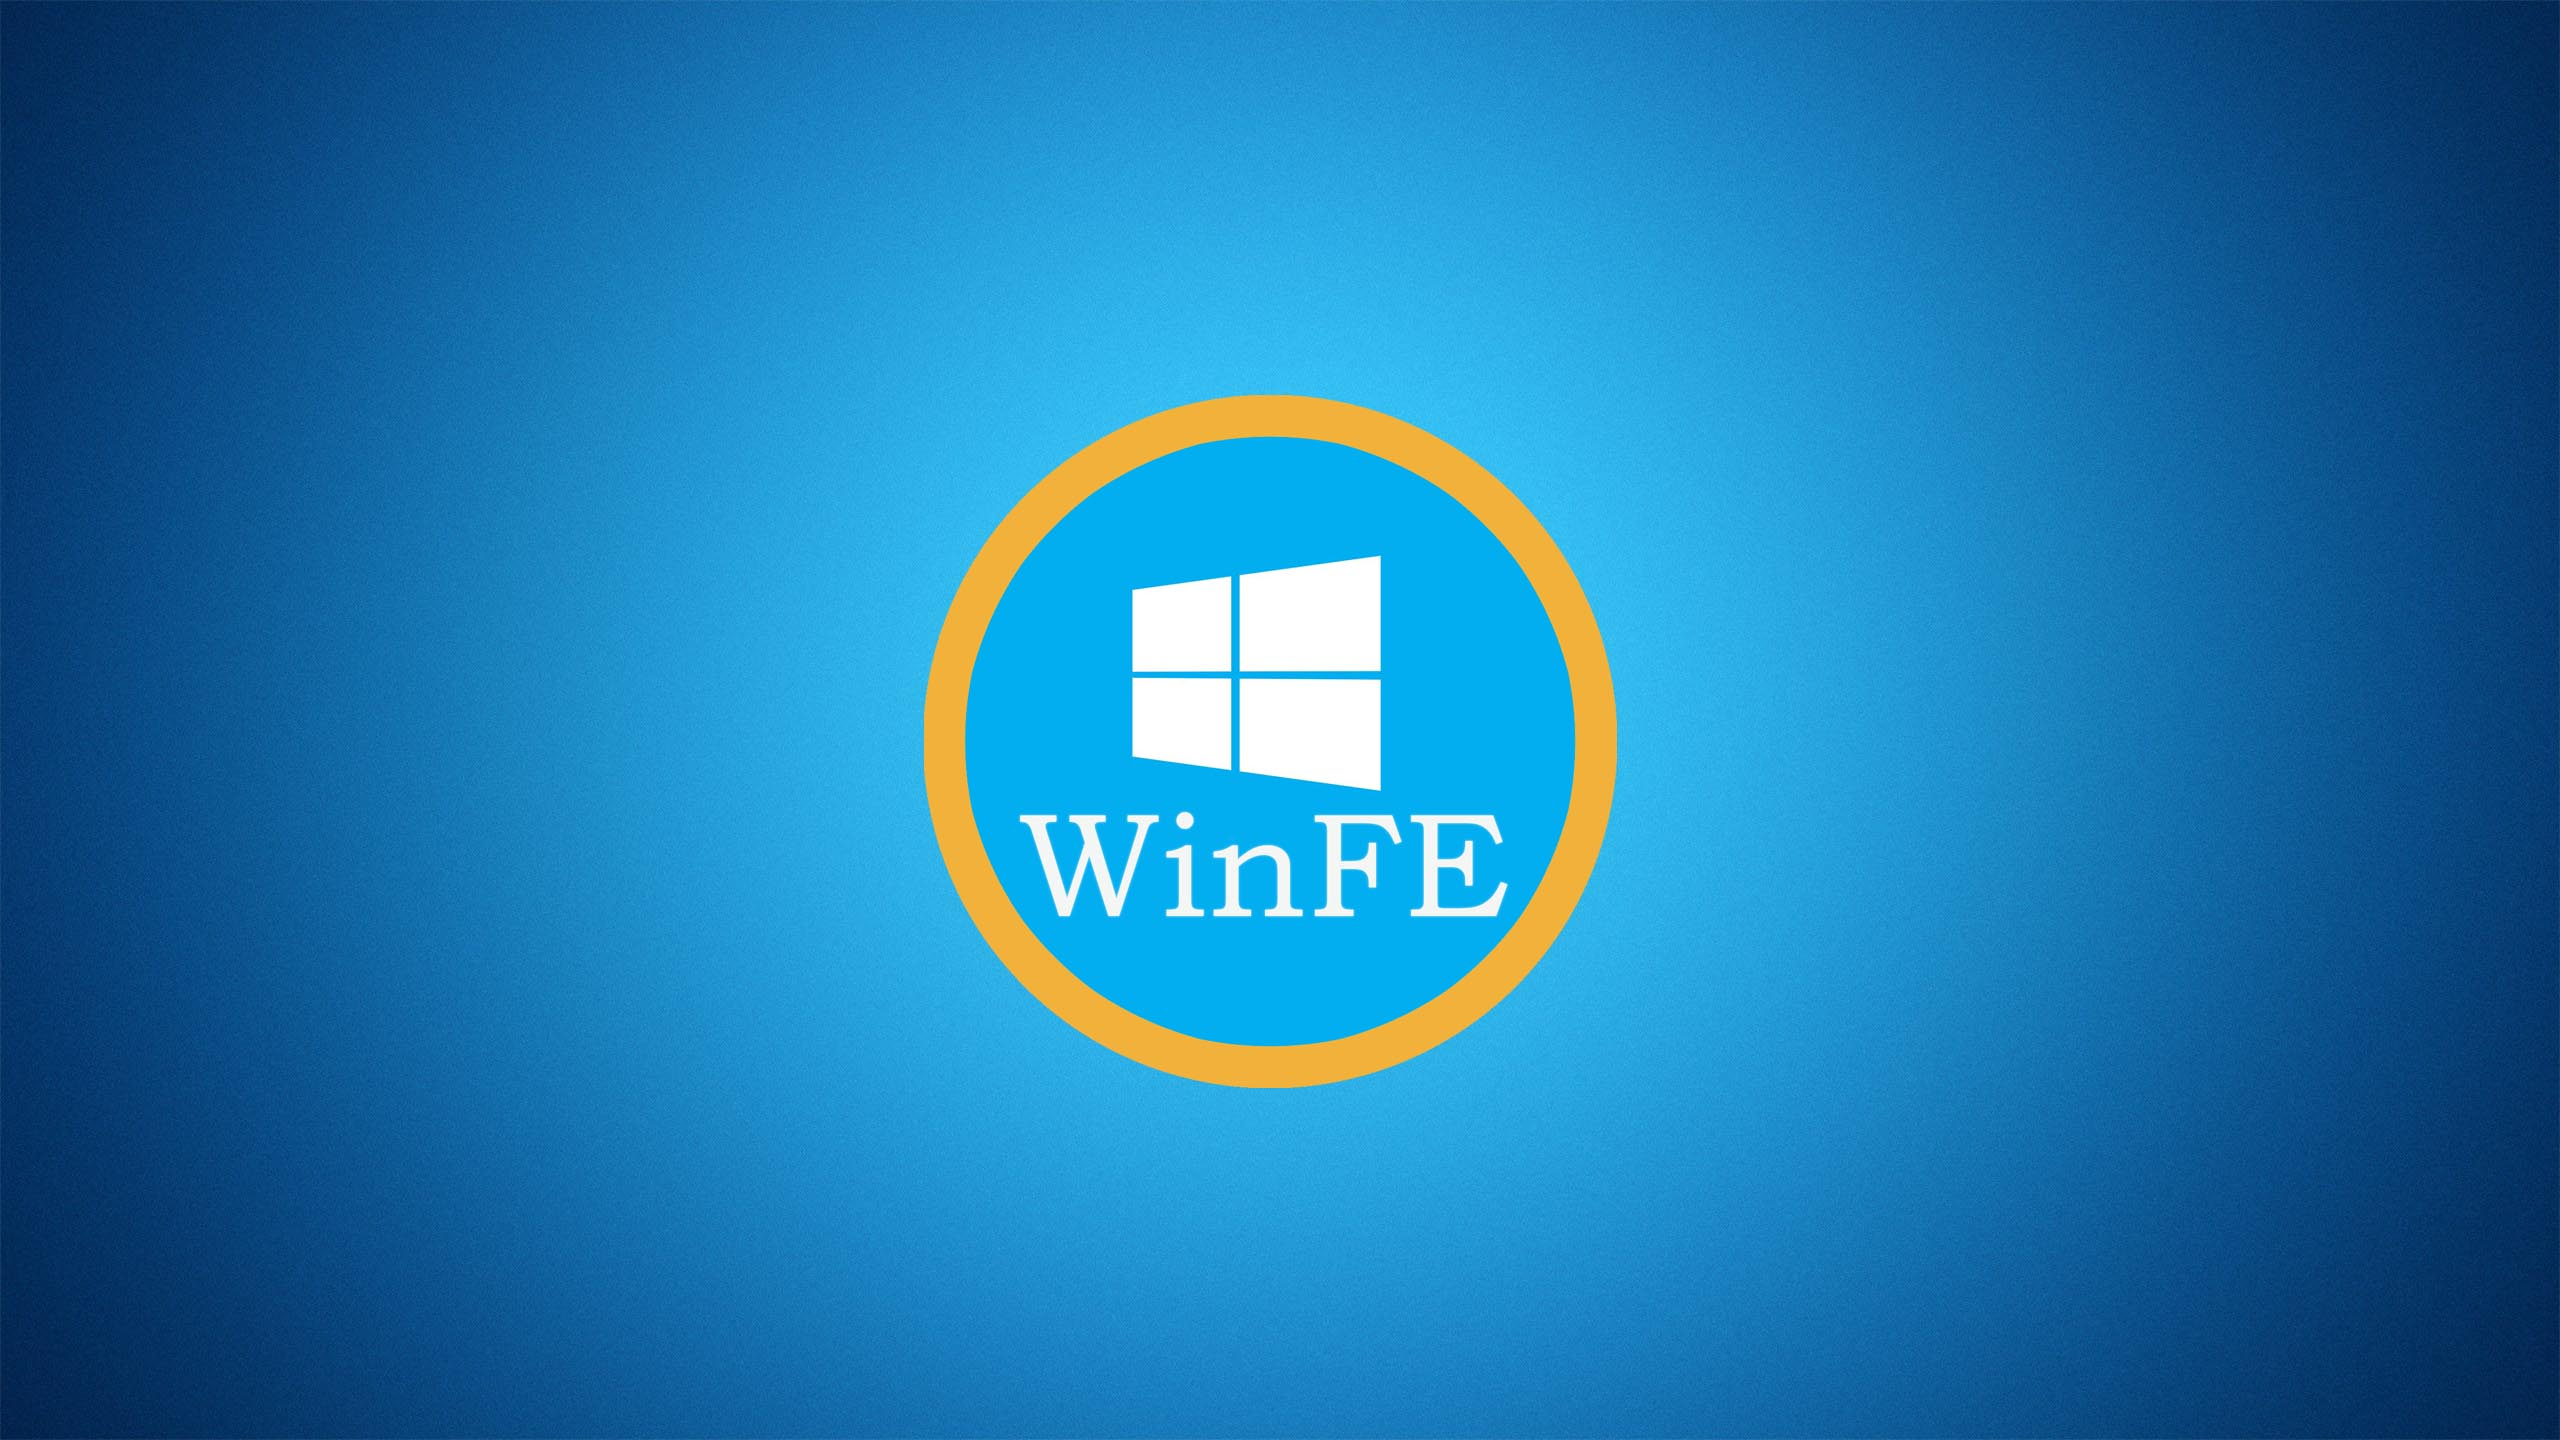 Windows Forensic Environment (WinFE)